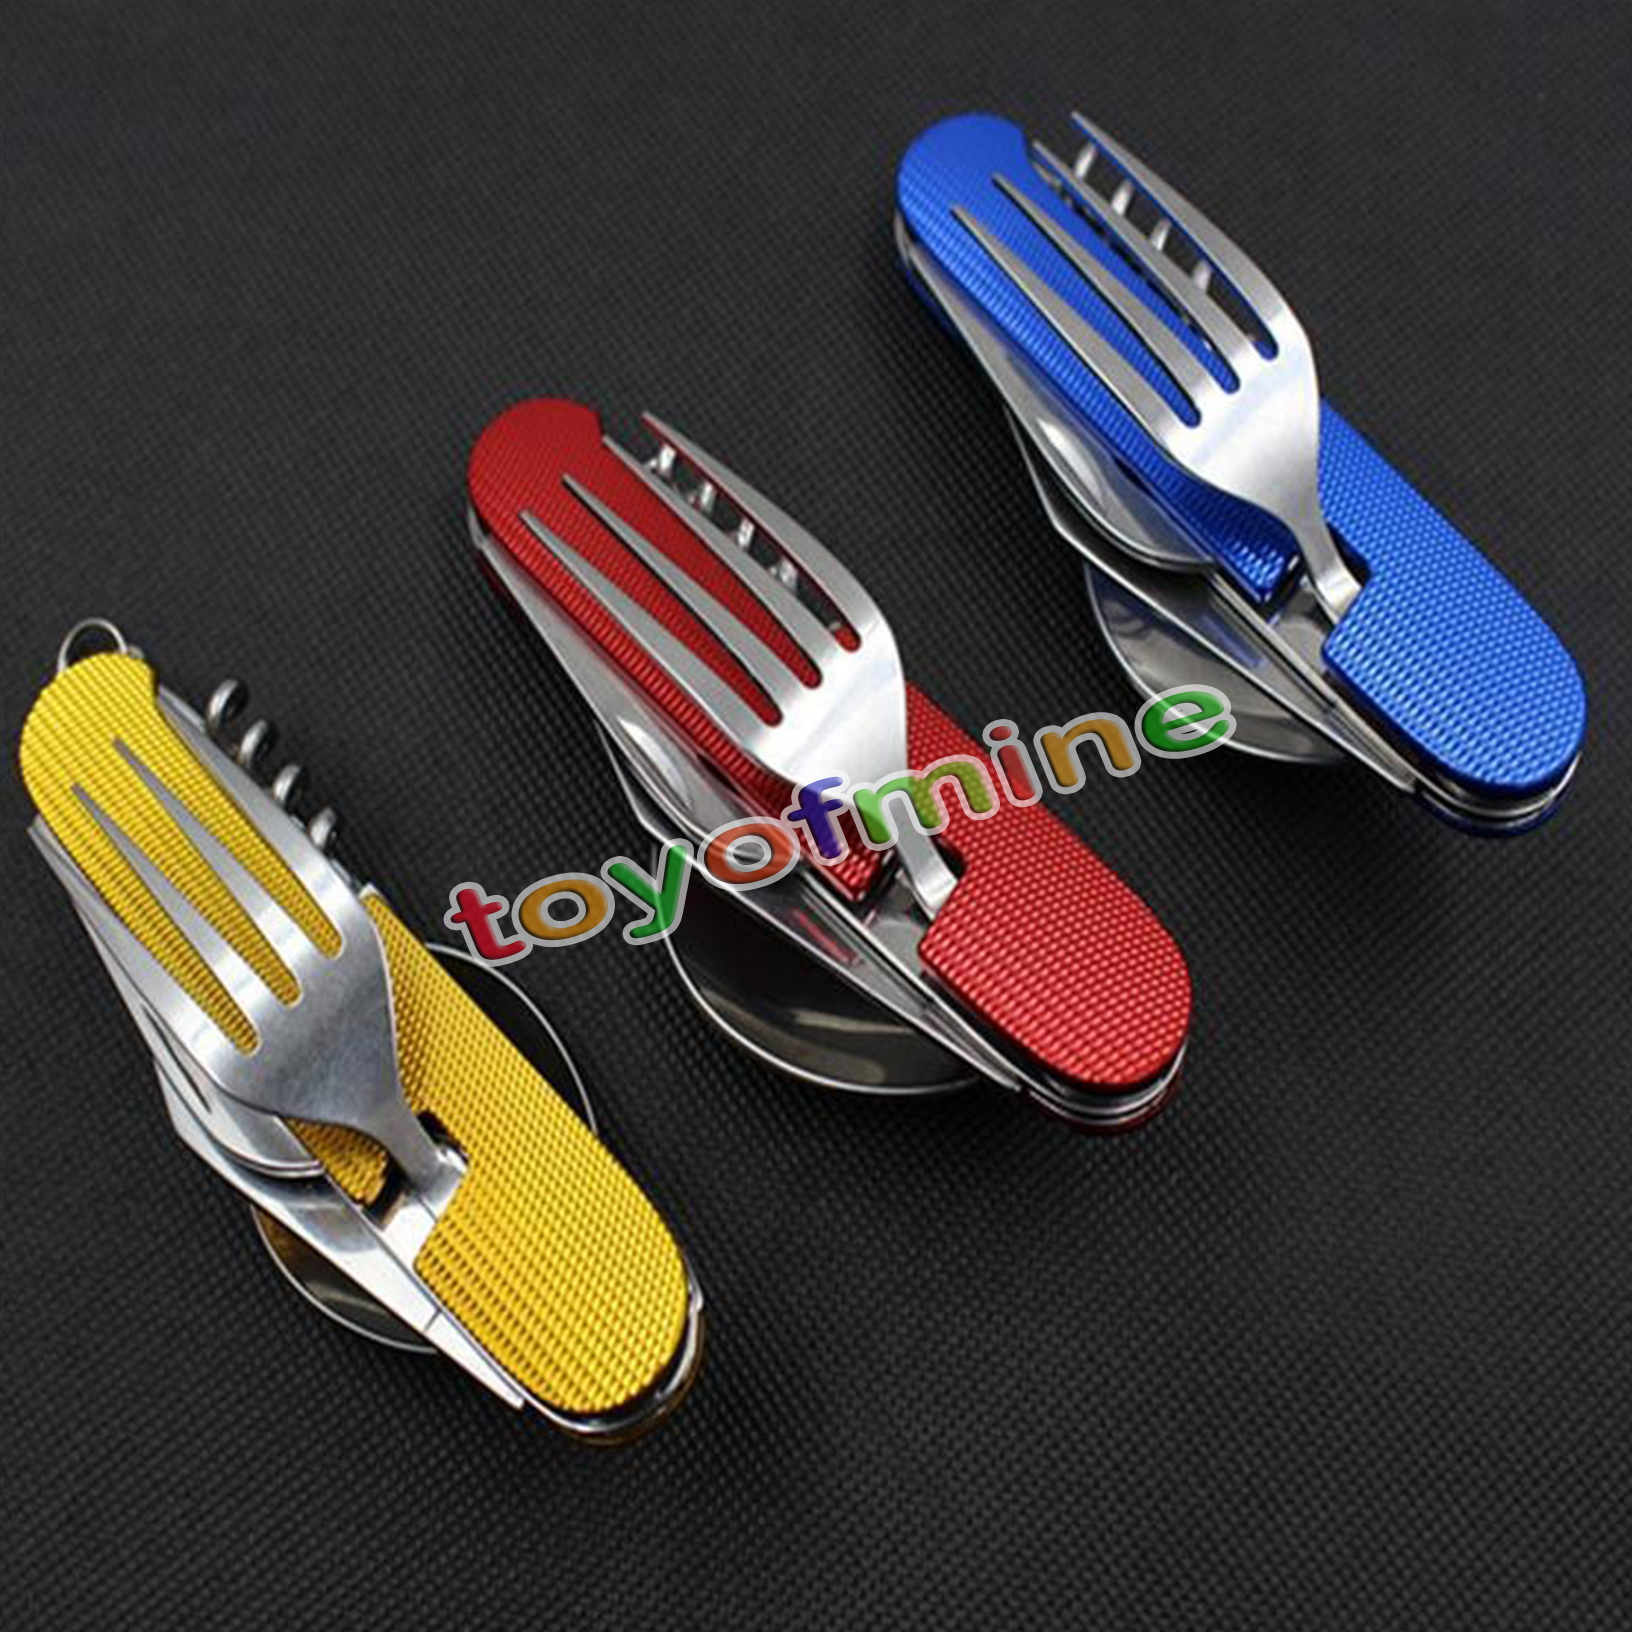 popular camp cutlery set buy cheap camp cutlery set lots from